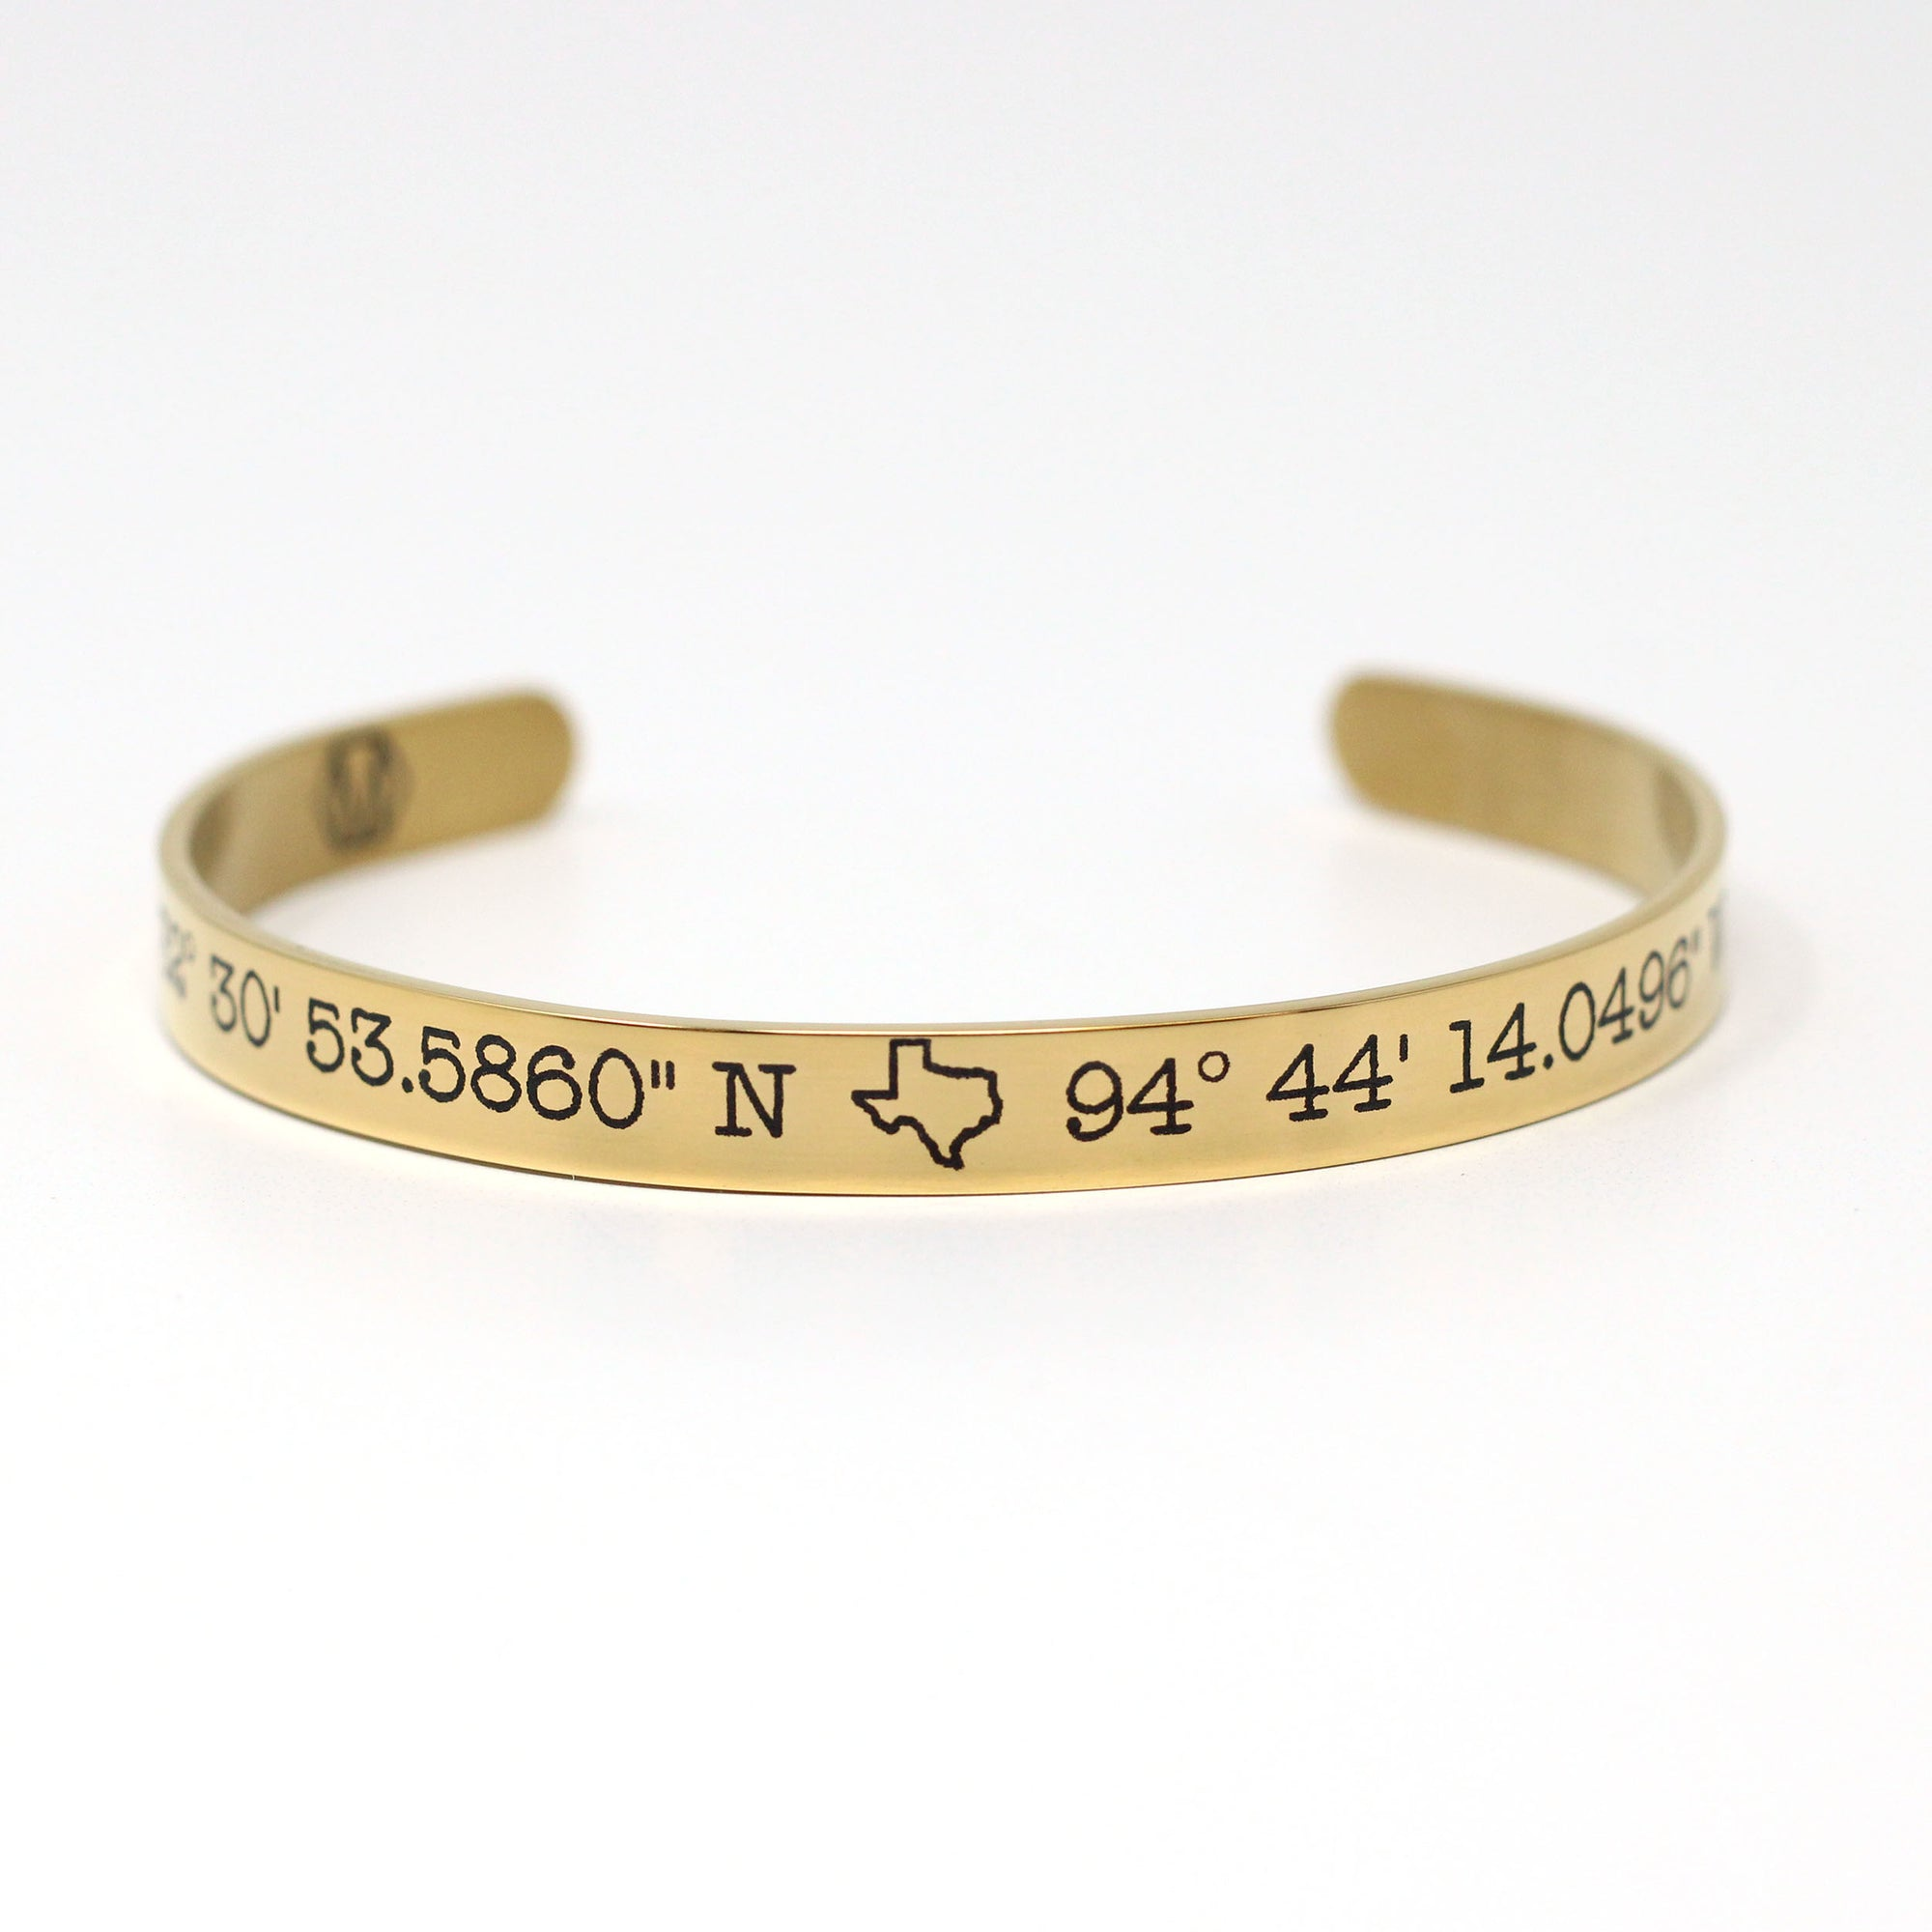 Customized Coordinates Cuff Bracelet